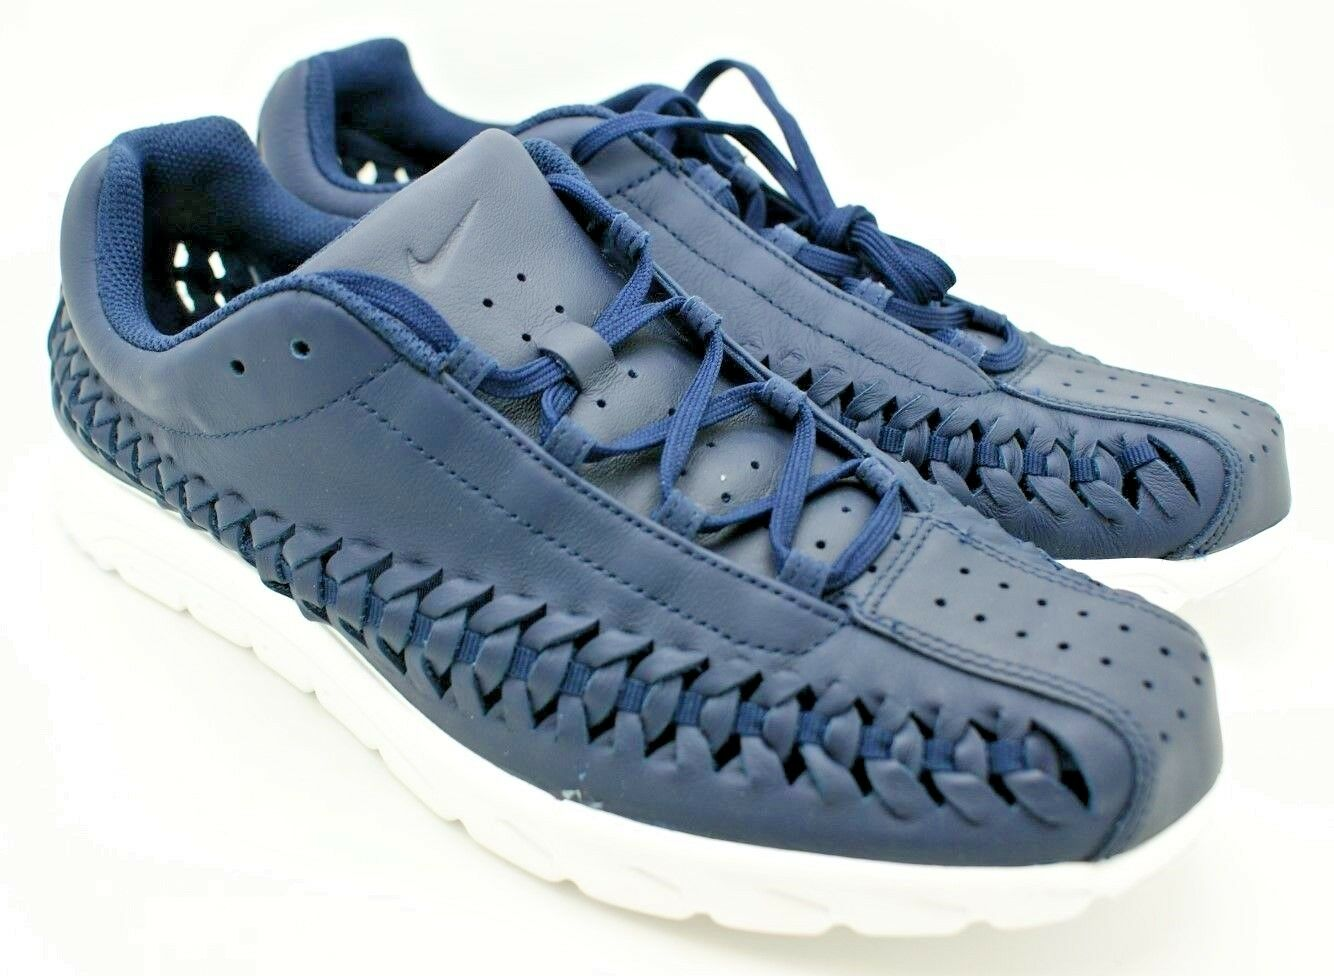 Nike Mens Mayfly Woven Leather Obsidian Navy Running shoes Sneakers 833132 11 NIB